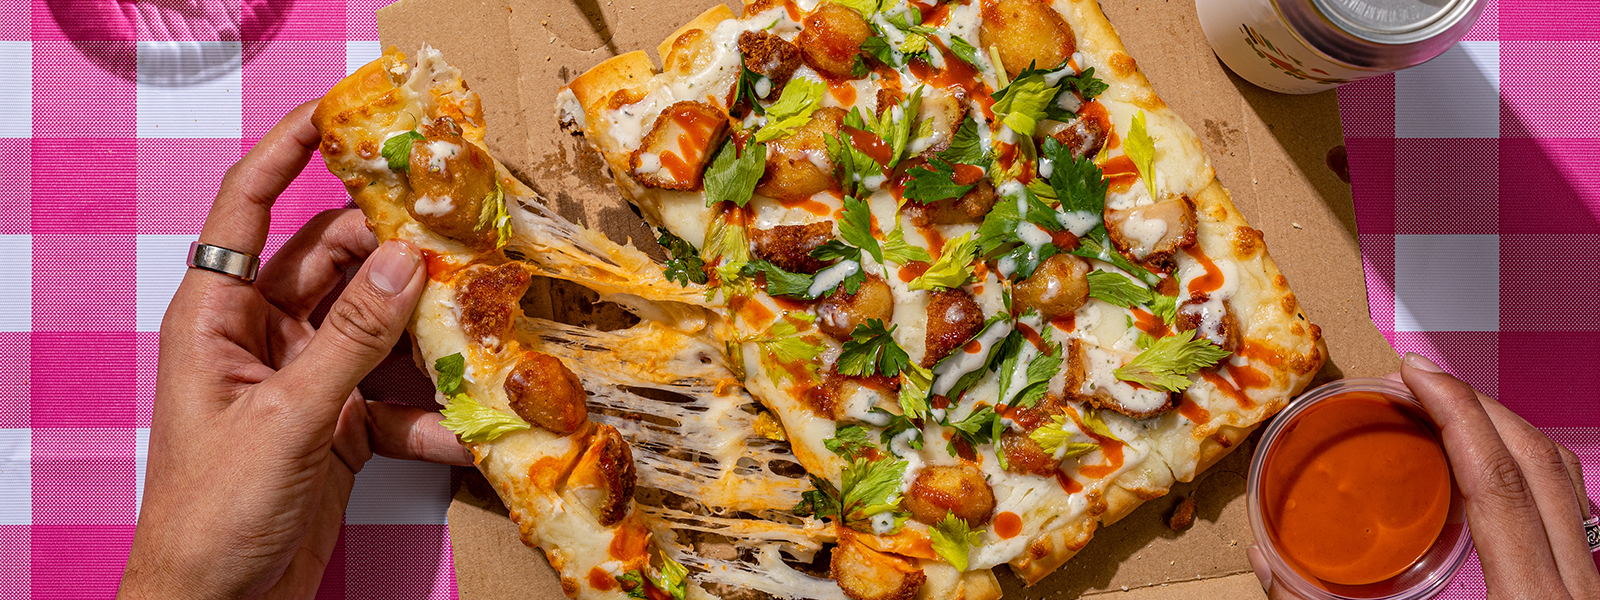 Say Hello to Our New Pizza Sticks!